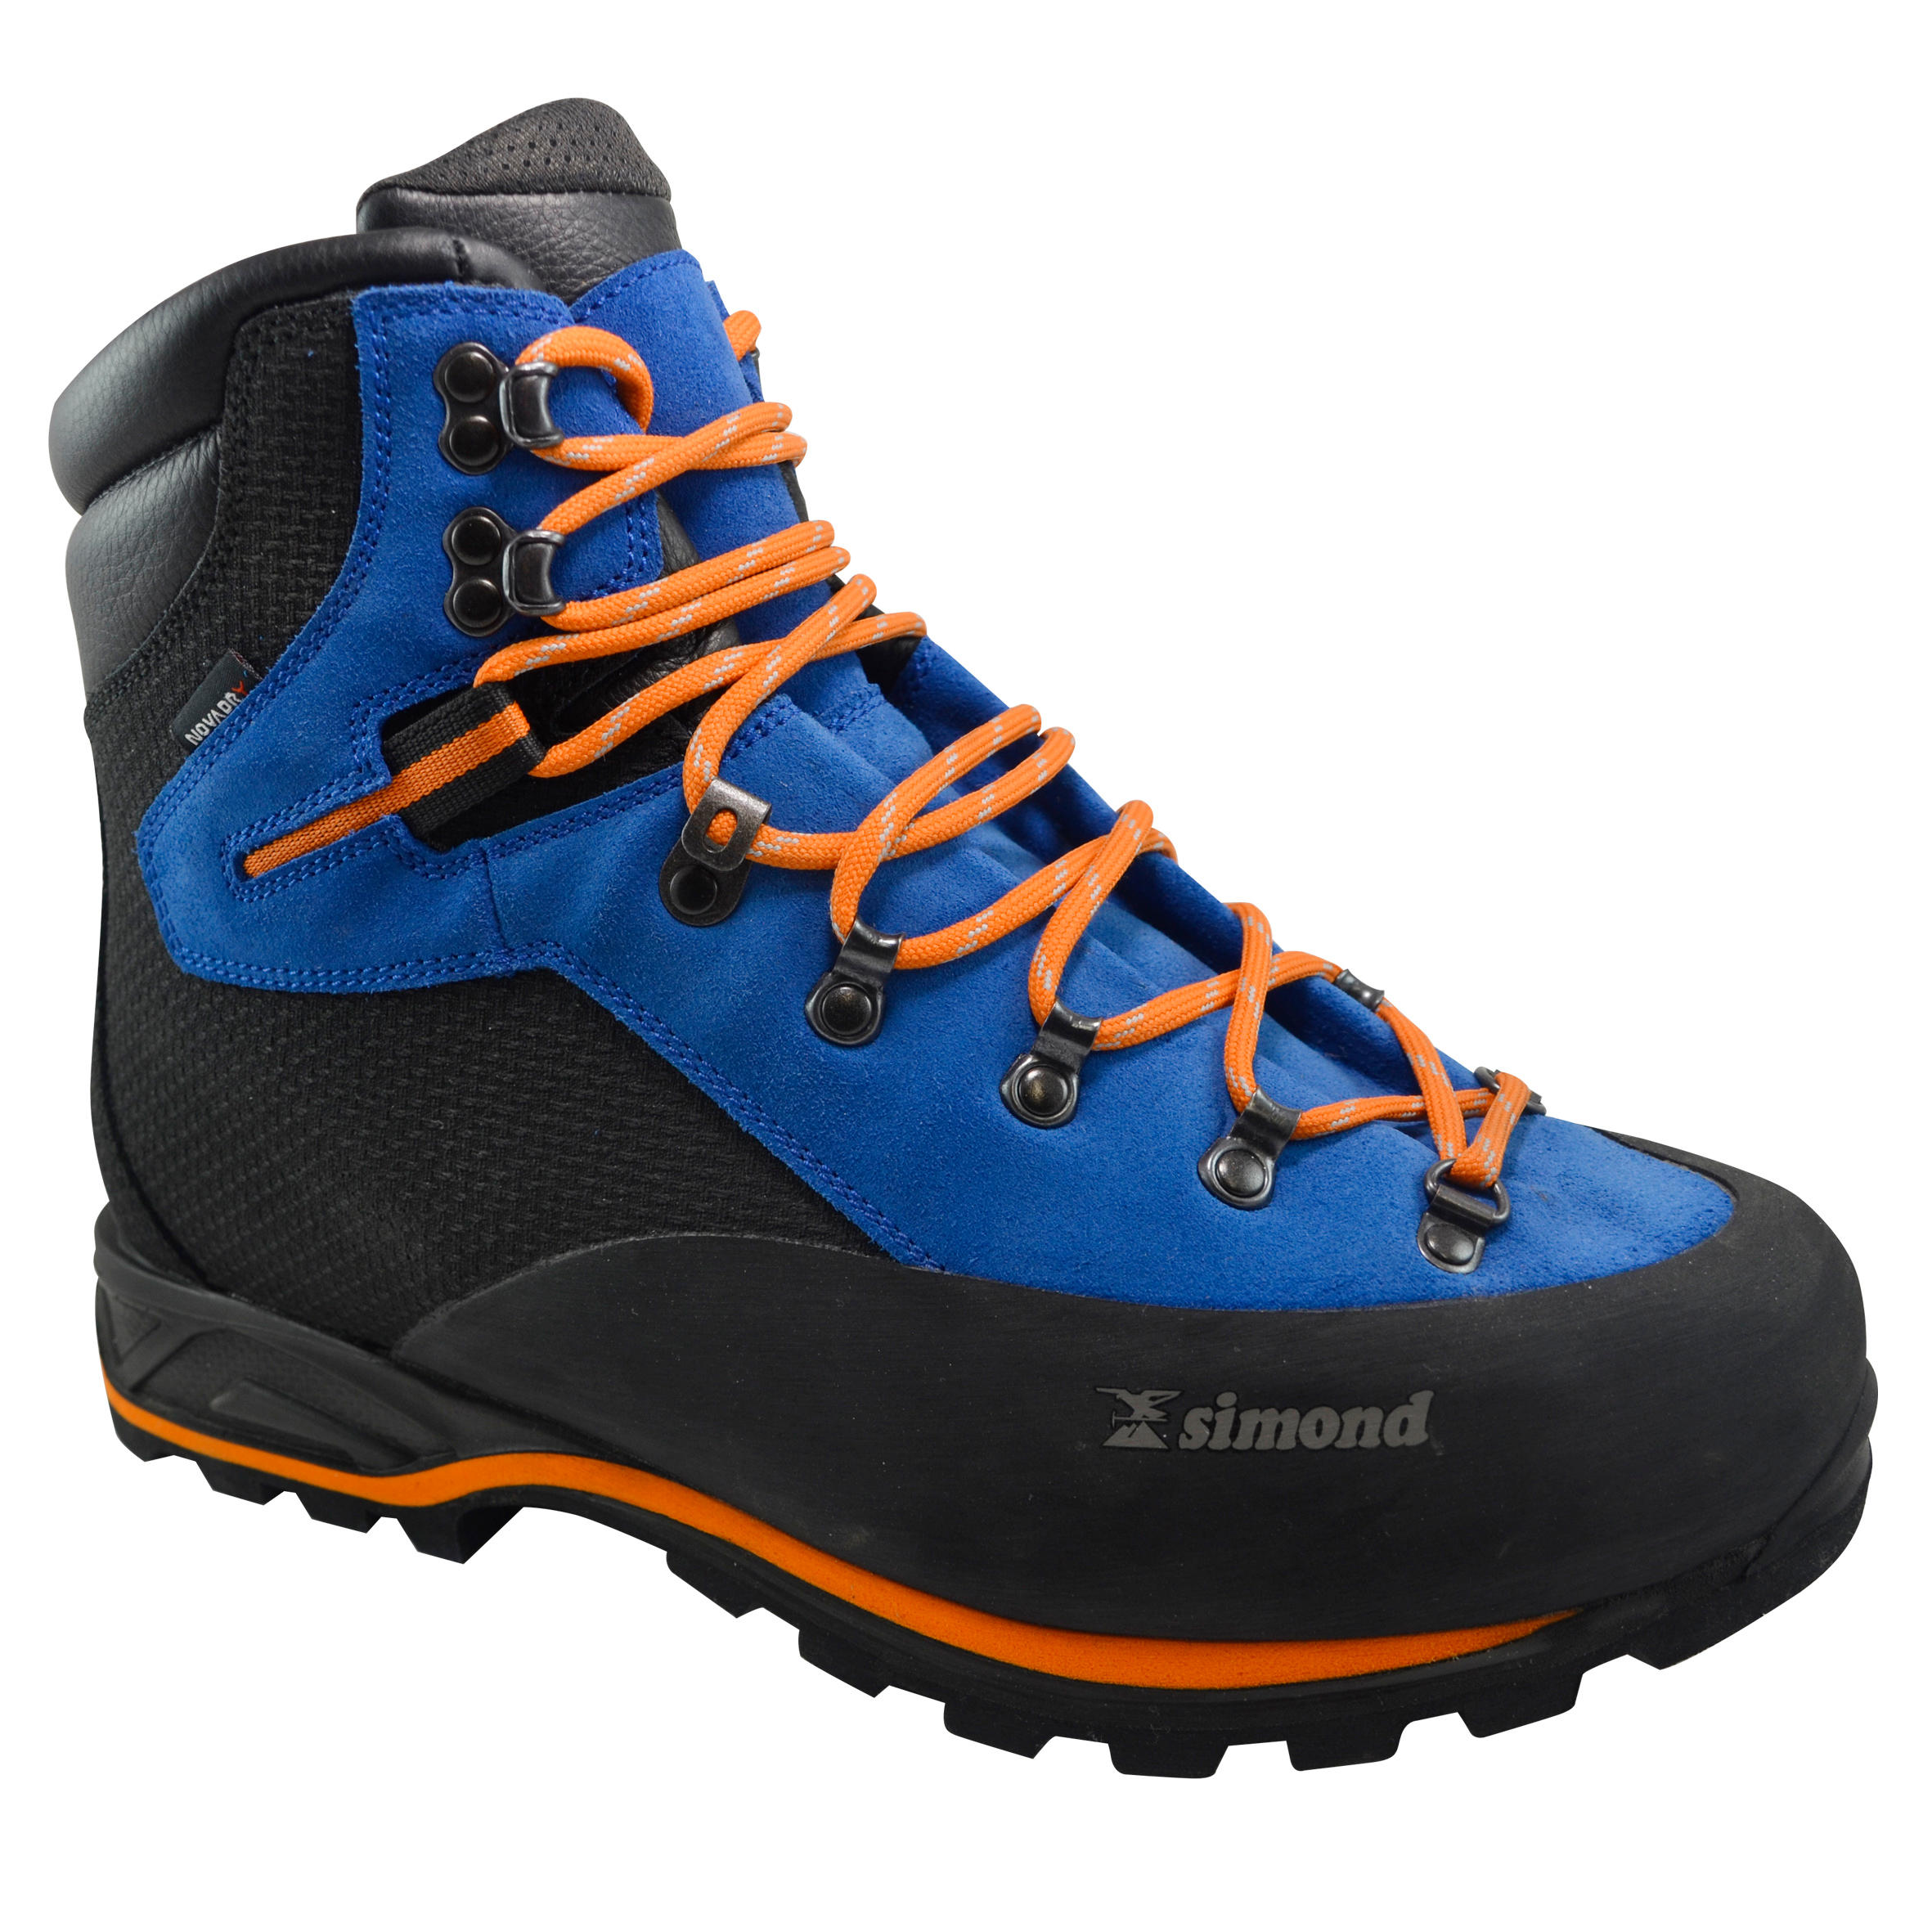 CHAUSSURE ALPINISME BLEU TAILLES STANDARDS_SEMI_COLON_ 41_SEMI_COLON_ 42_SEMI_COLON_ 43_SEMI_COLON_ 44_SEMI_COLON_ 45_SEMI_COLON